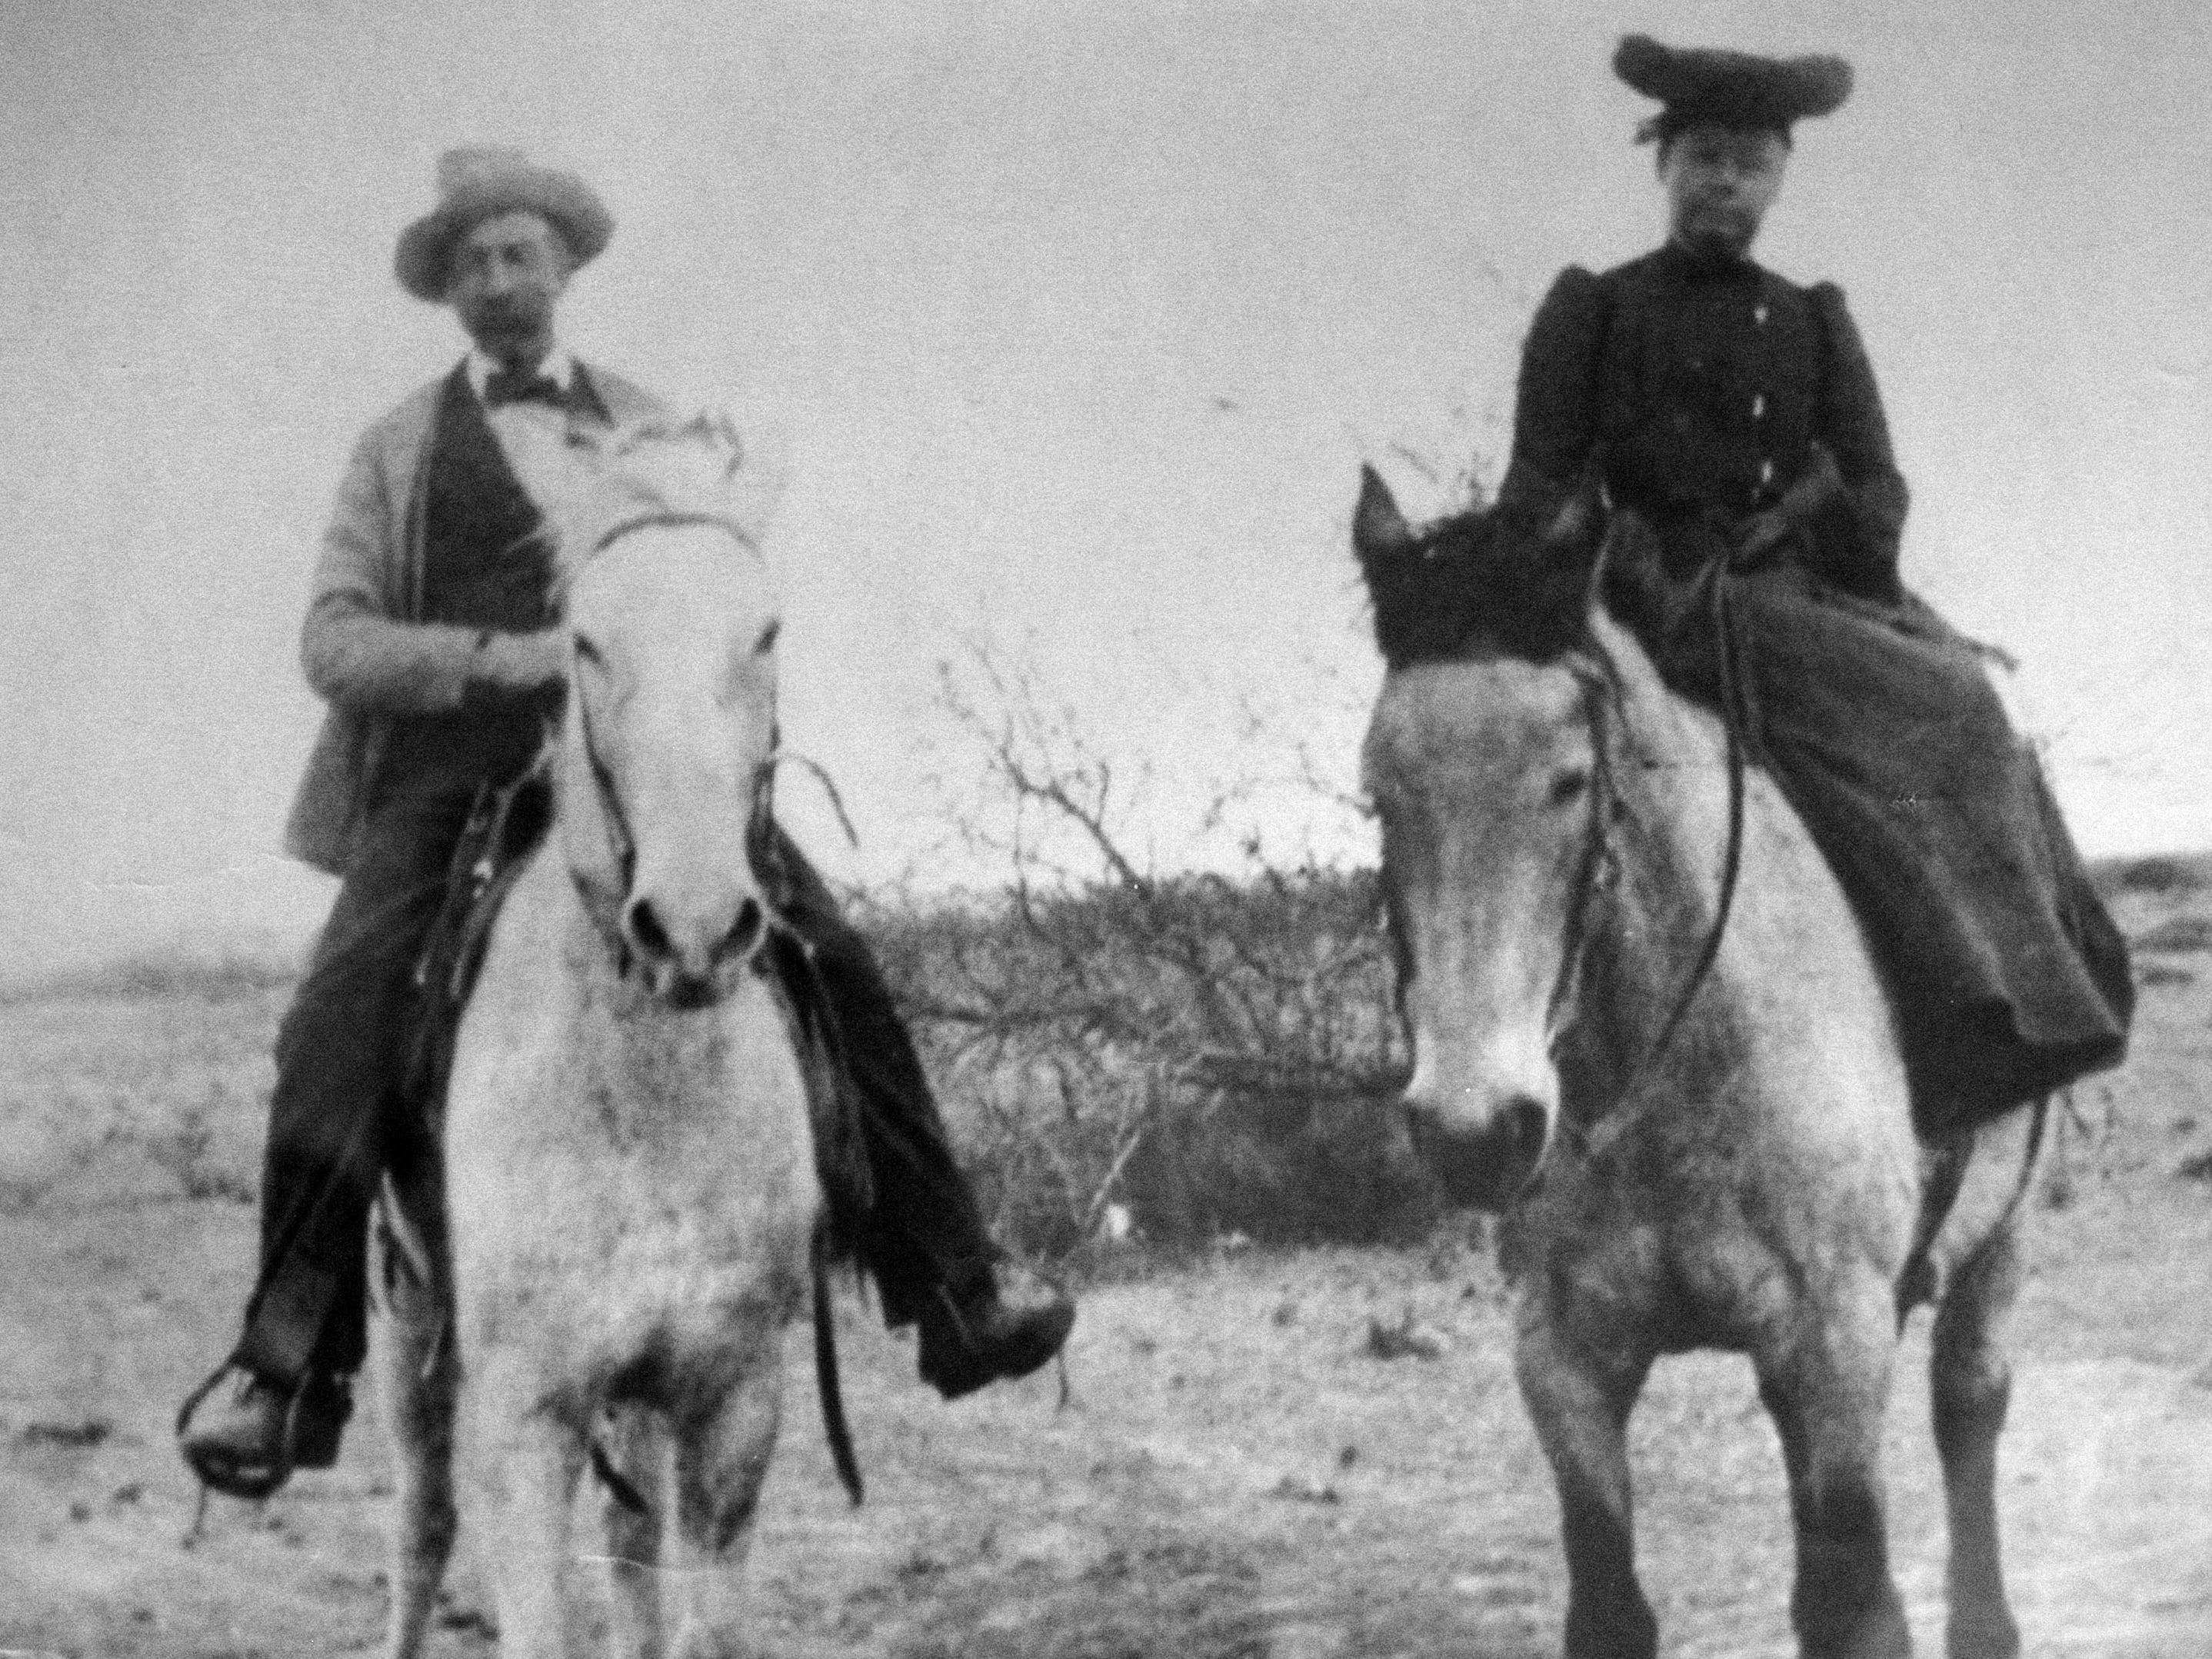 Henry Clay Day and Alice Day, the grandparents of former Supreme Court Justice Sandra Day O'Connor, at the Lazy B Ranch in Duncan, Ariz., in the 1910s.